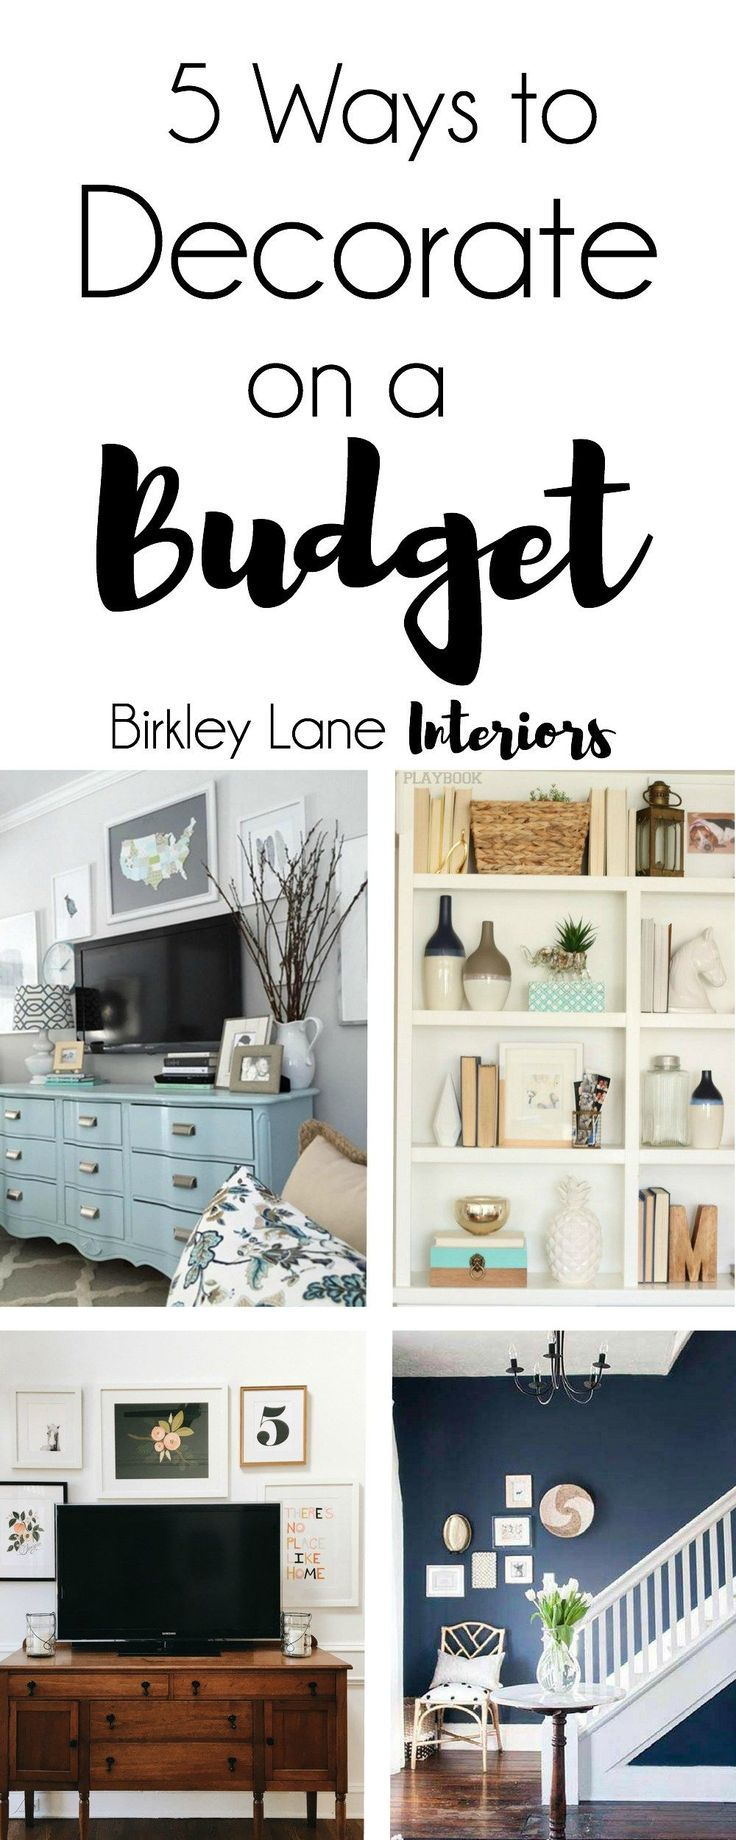 best 25 affordable home decor ideas only on pinterest house 5 ways to decorate on a budget